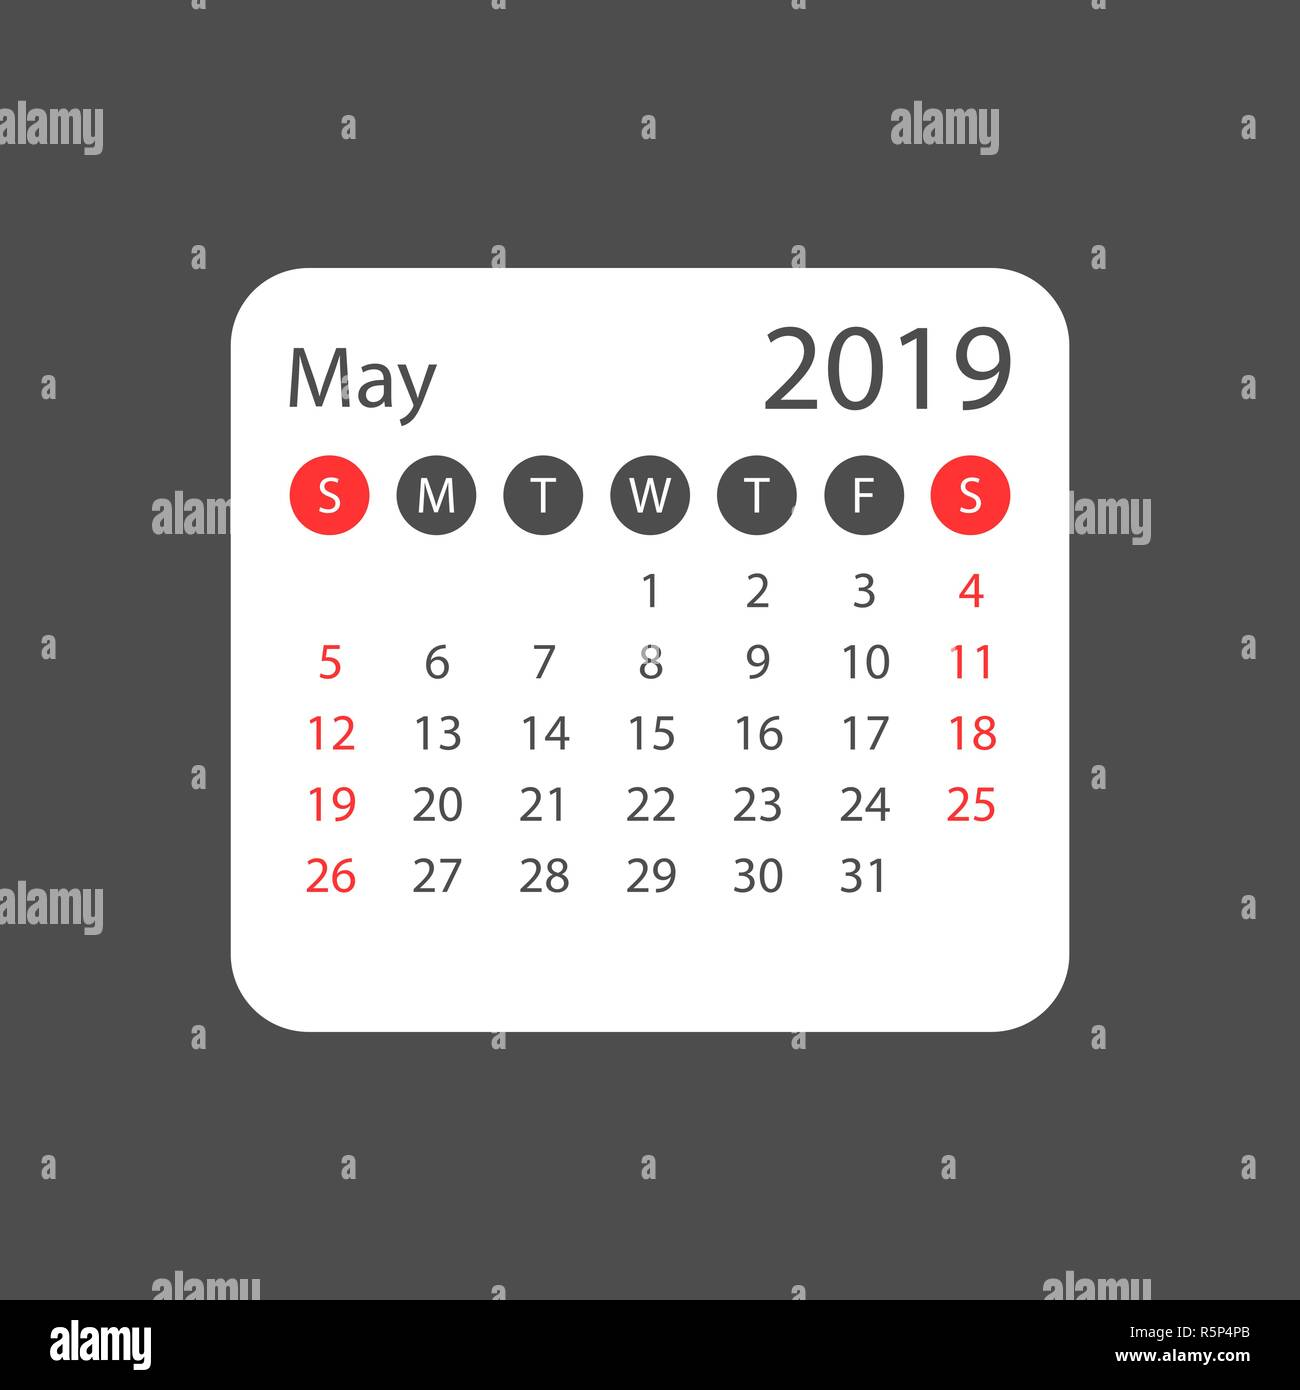 Calendar may 2019 year in simple style  Calendar planner